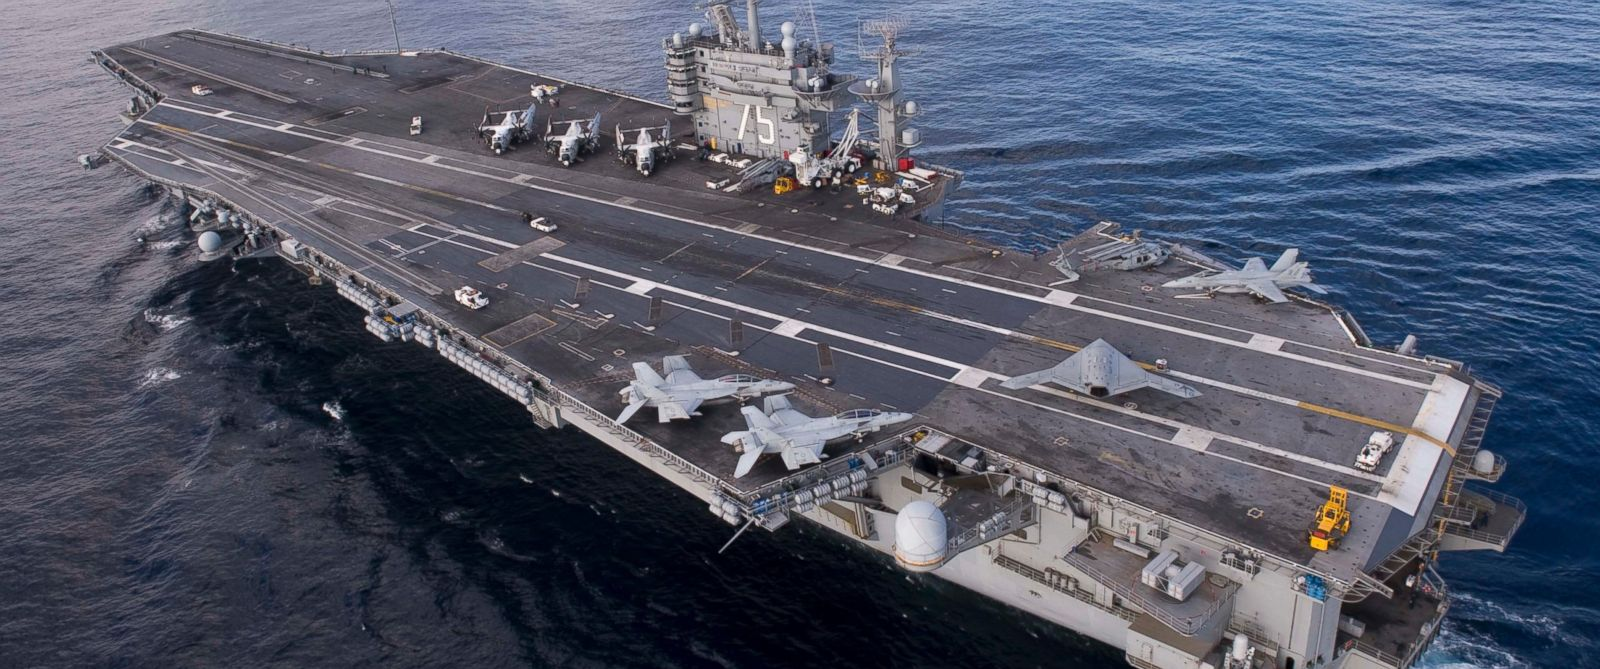 PHOTO: The USS Harry S. Truman is pictured on Dec. 9, 2012 in the Atlantic Ocean.